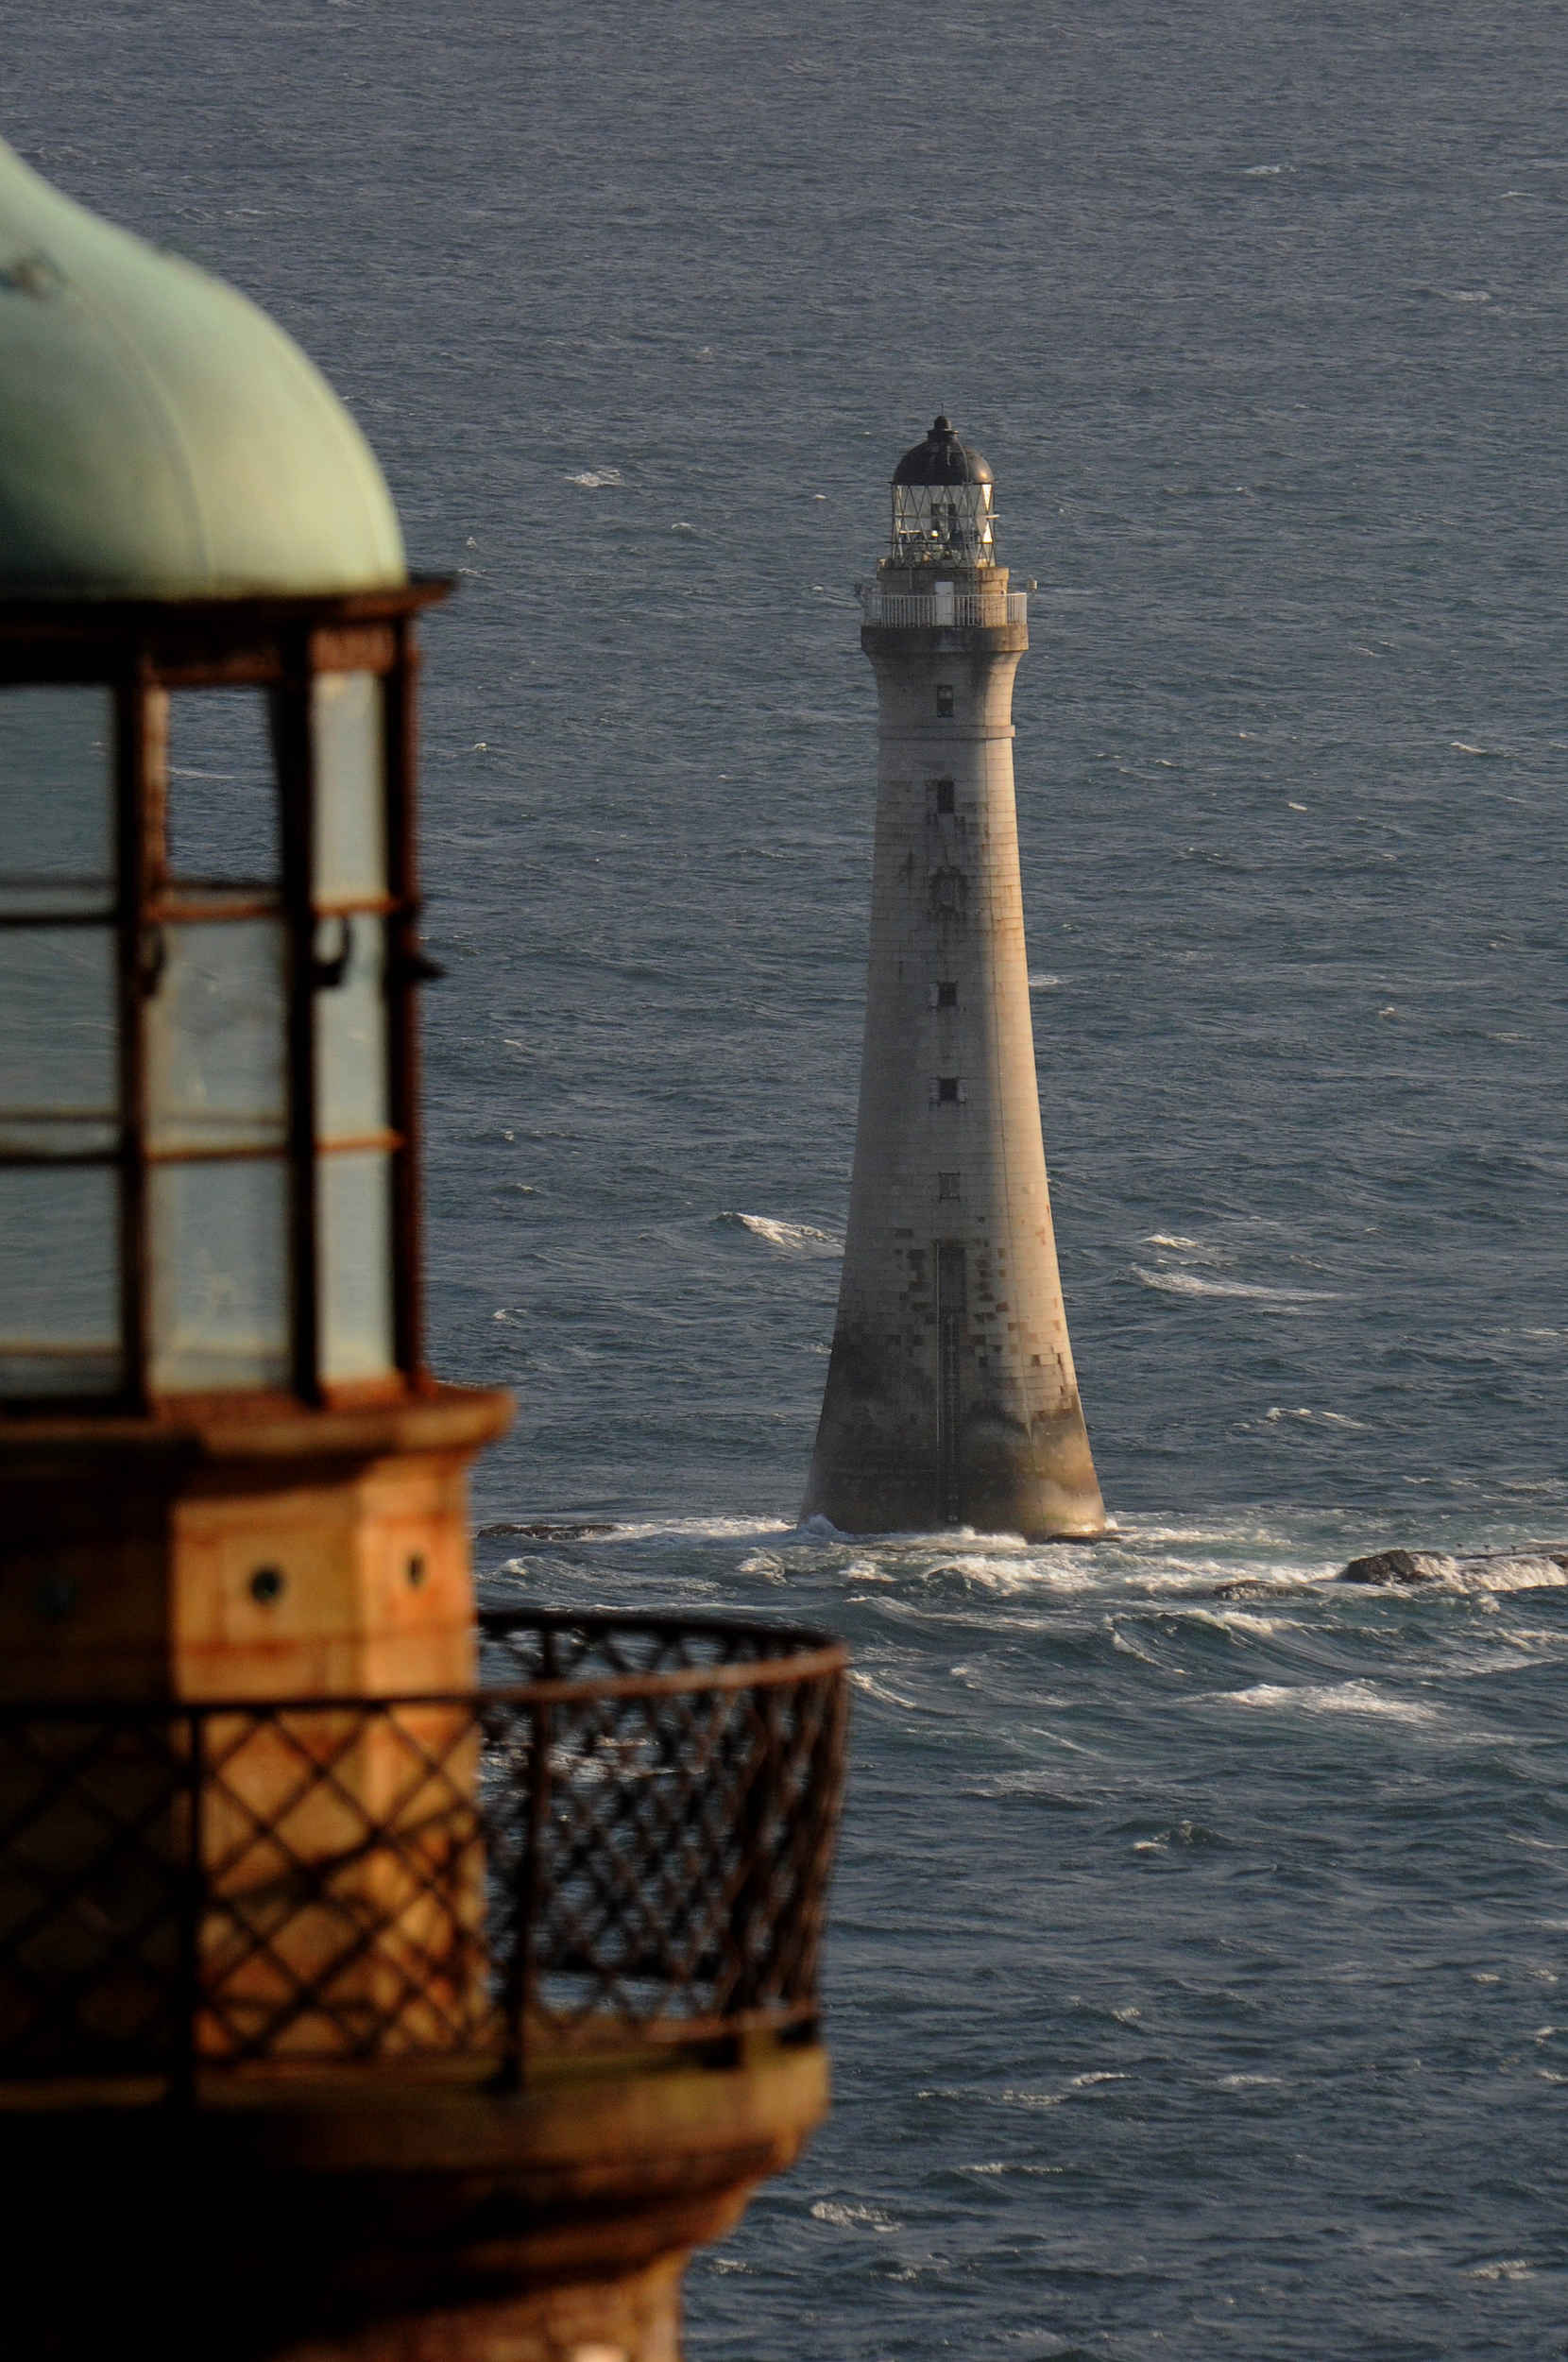 One of the Stevenson Lighthouses on the Calf of Man and Chicken Rock lighthouse